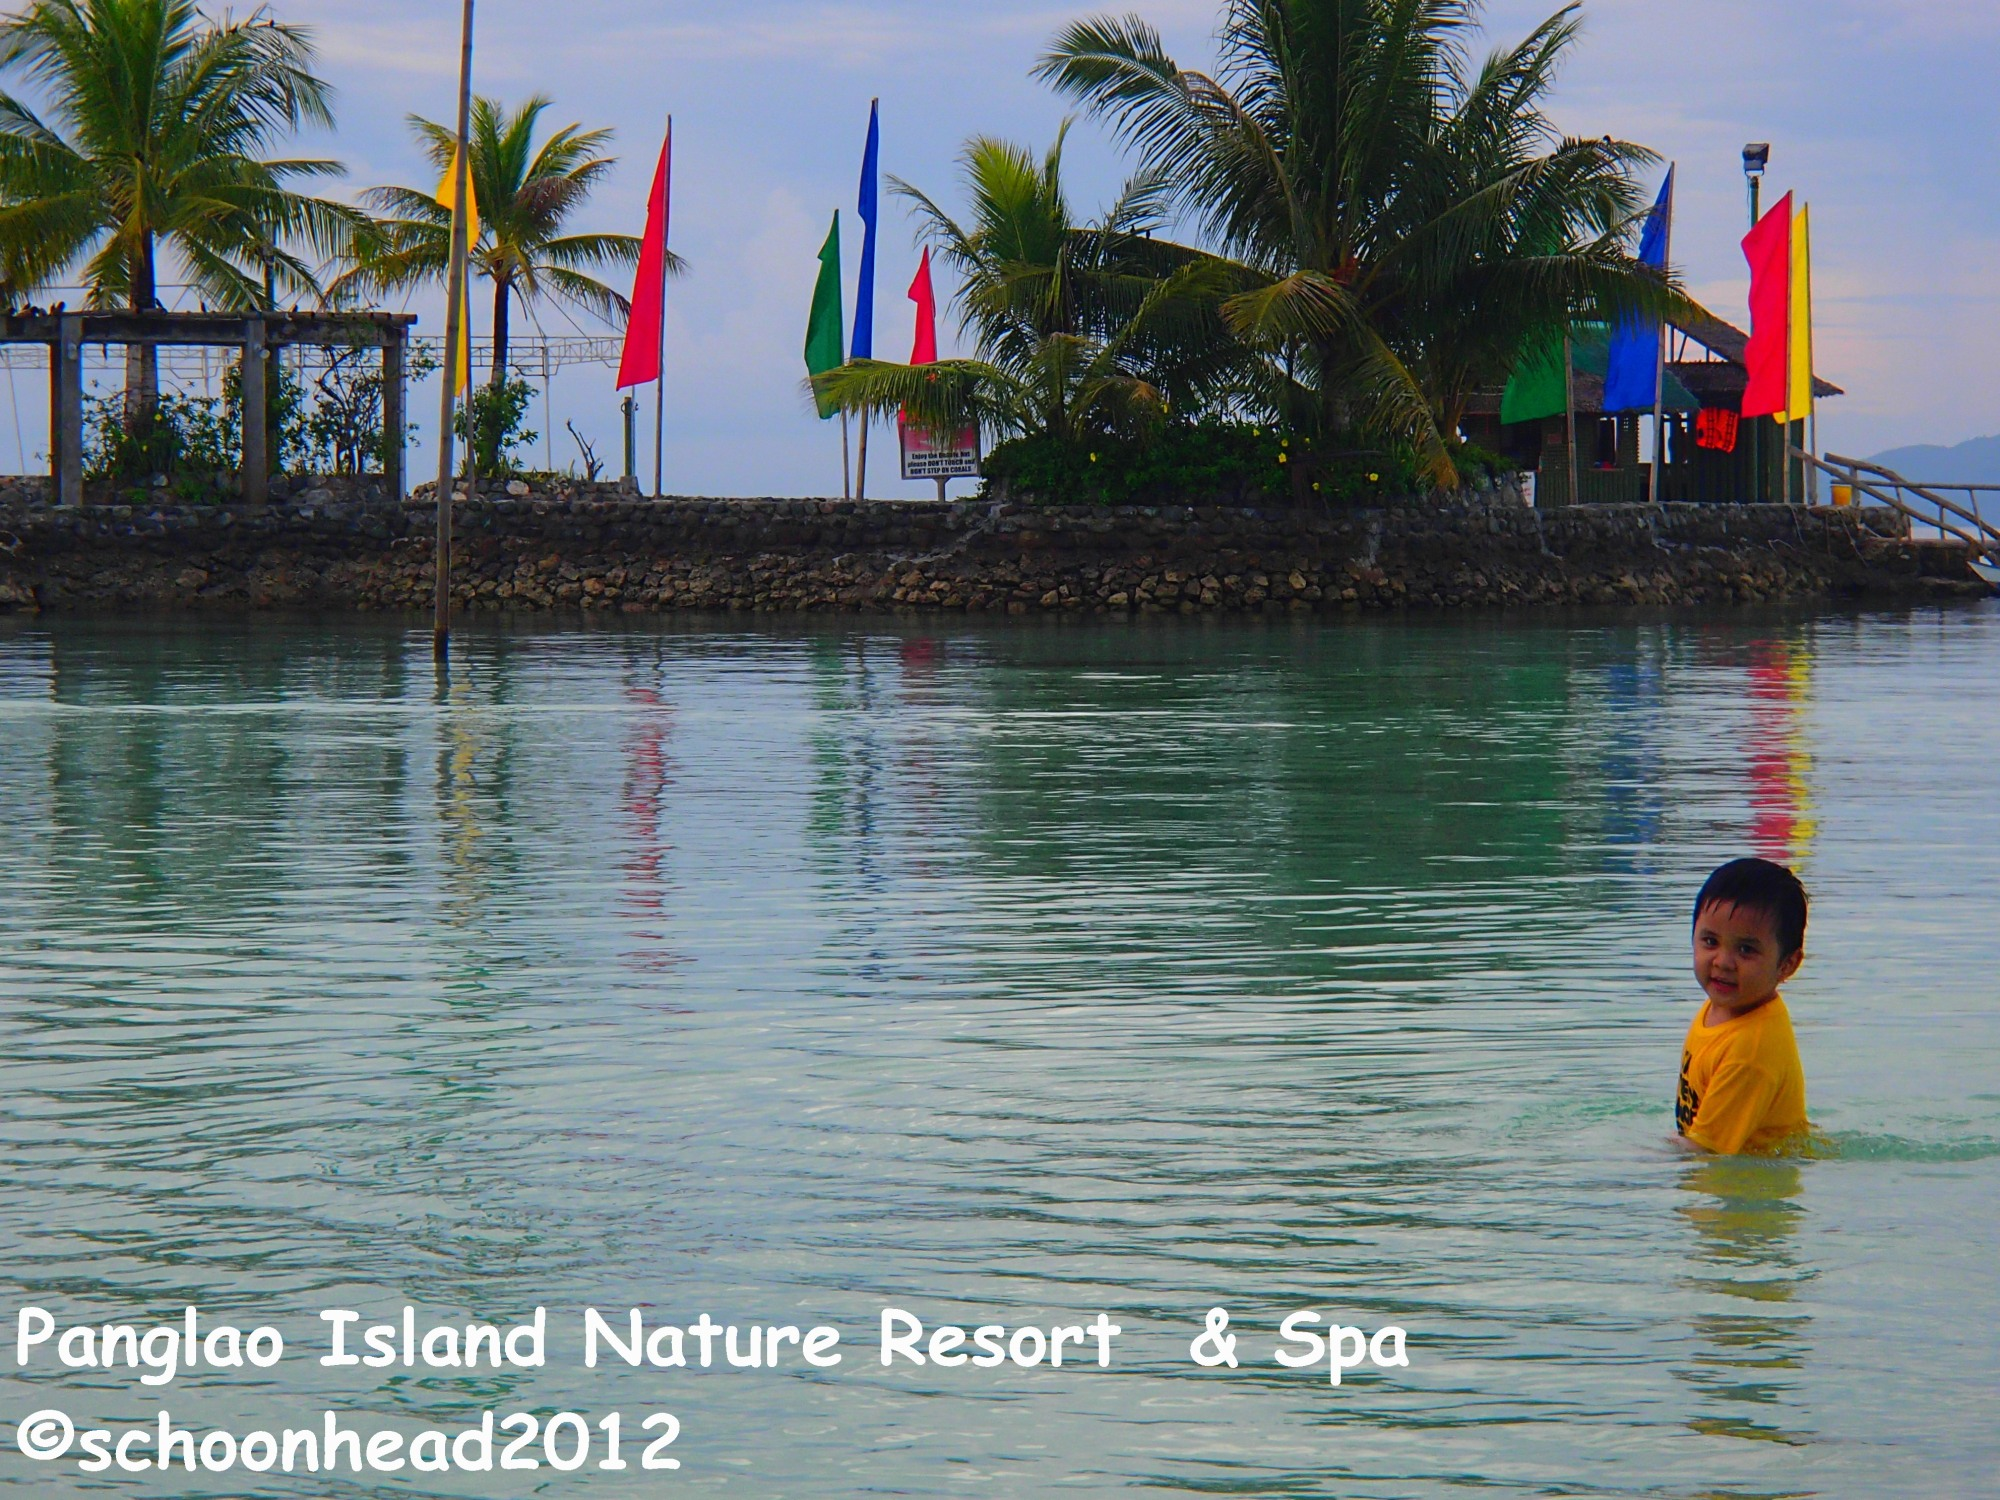 That's my nephew following my father to the man-made island.